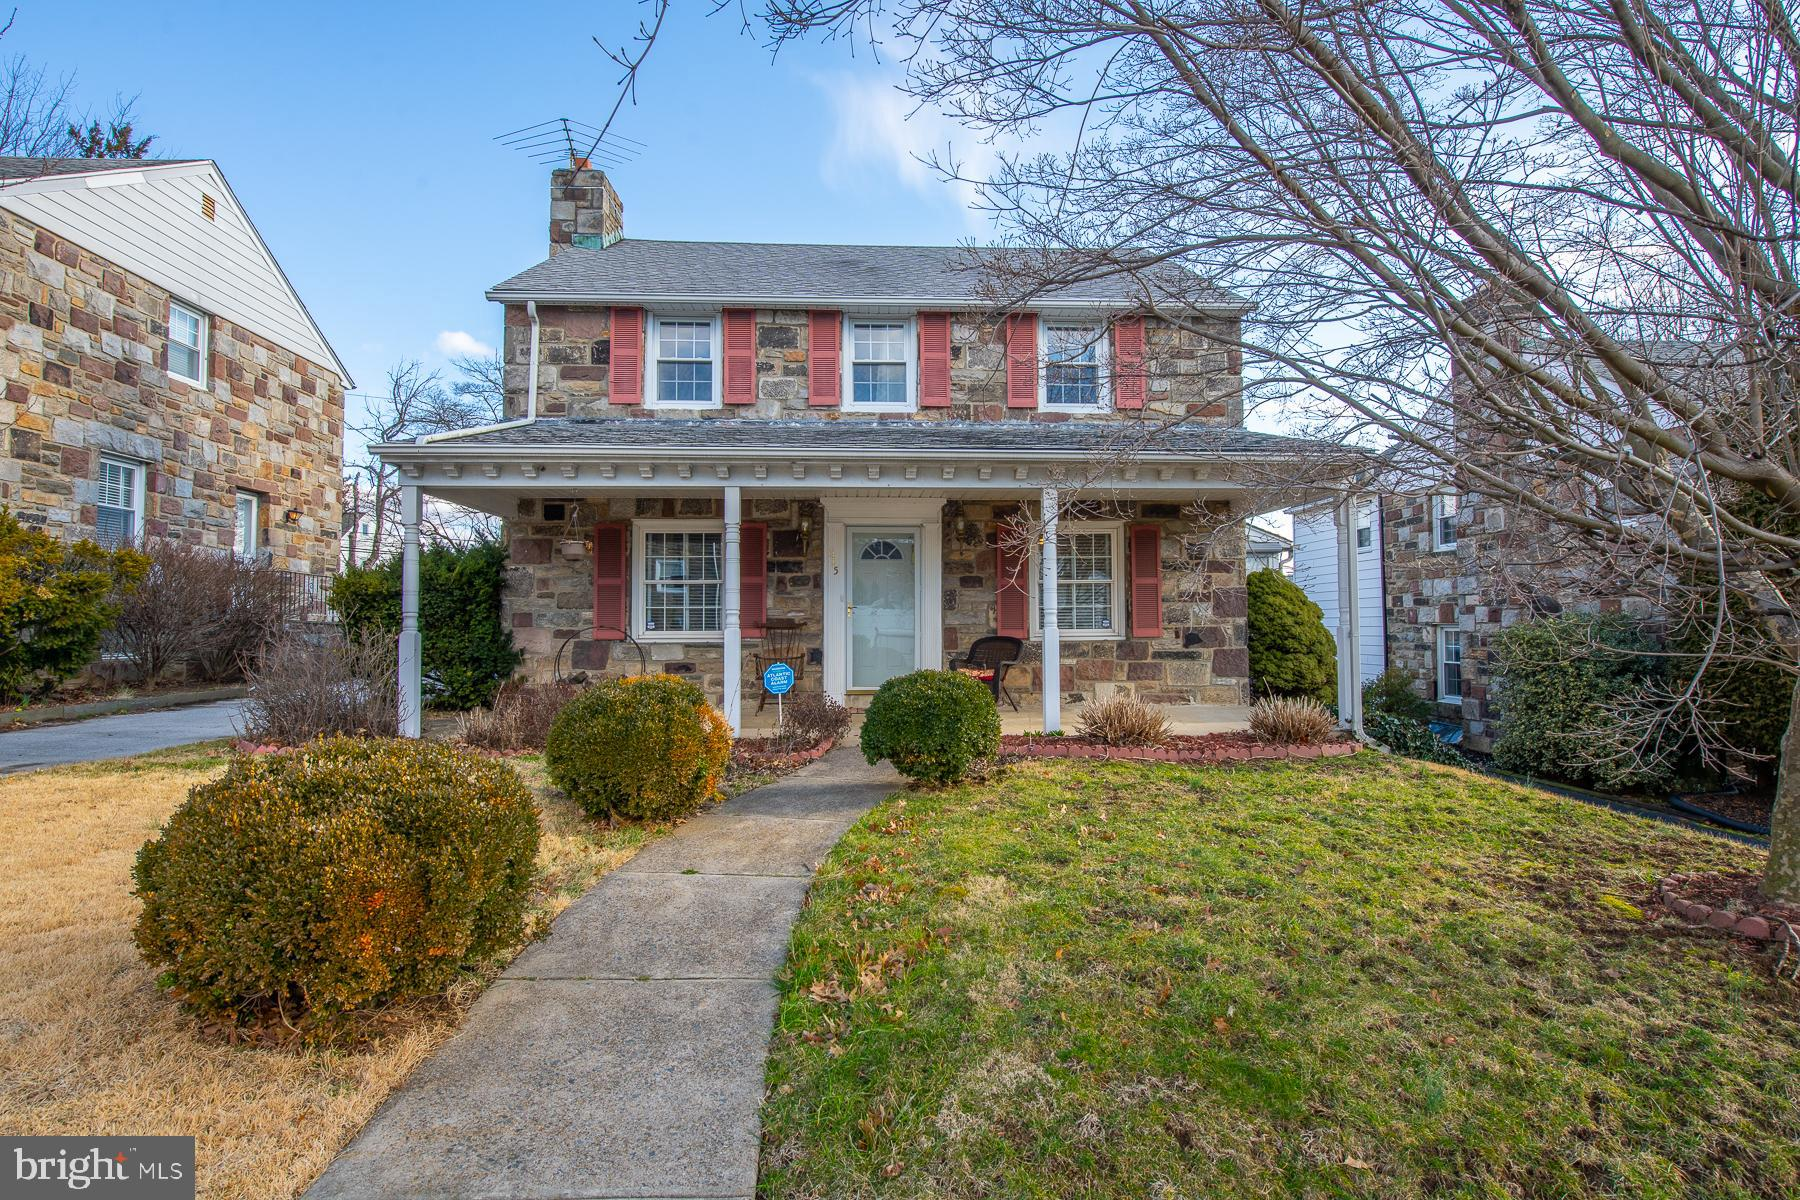 525 BROADVIEW ROAD, UPPER DARBY, PA 19082